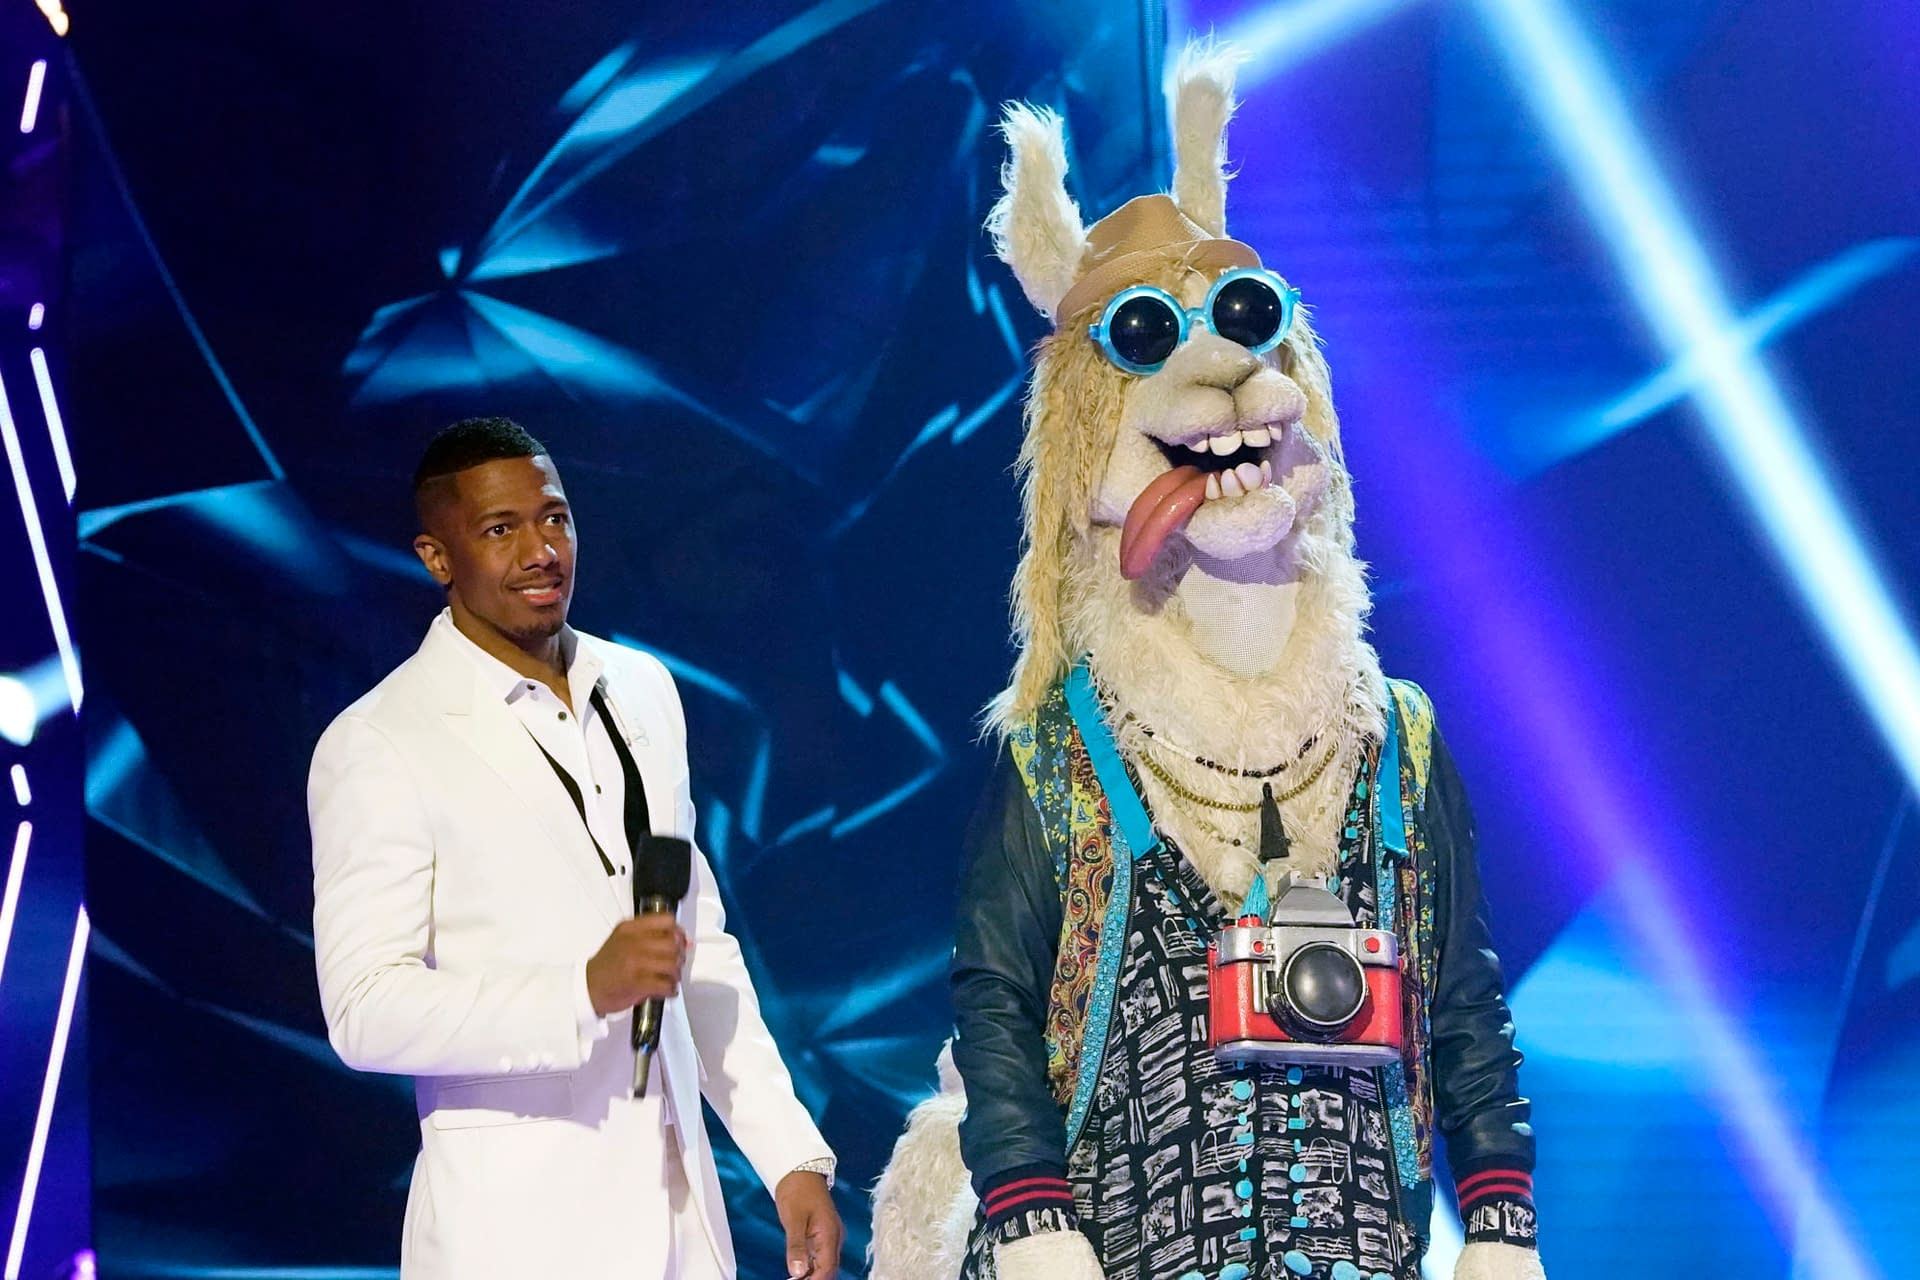 """The Masked Singer"" Season 3: With Apologies to Men at Work, Colin Hay [VIDEO]"